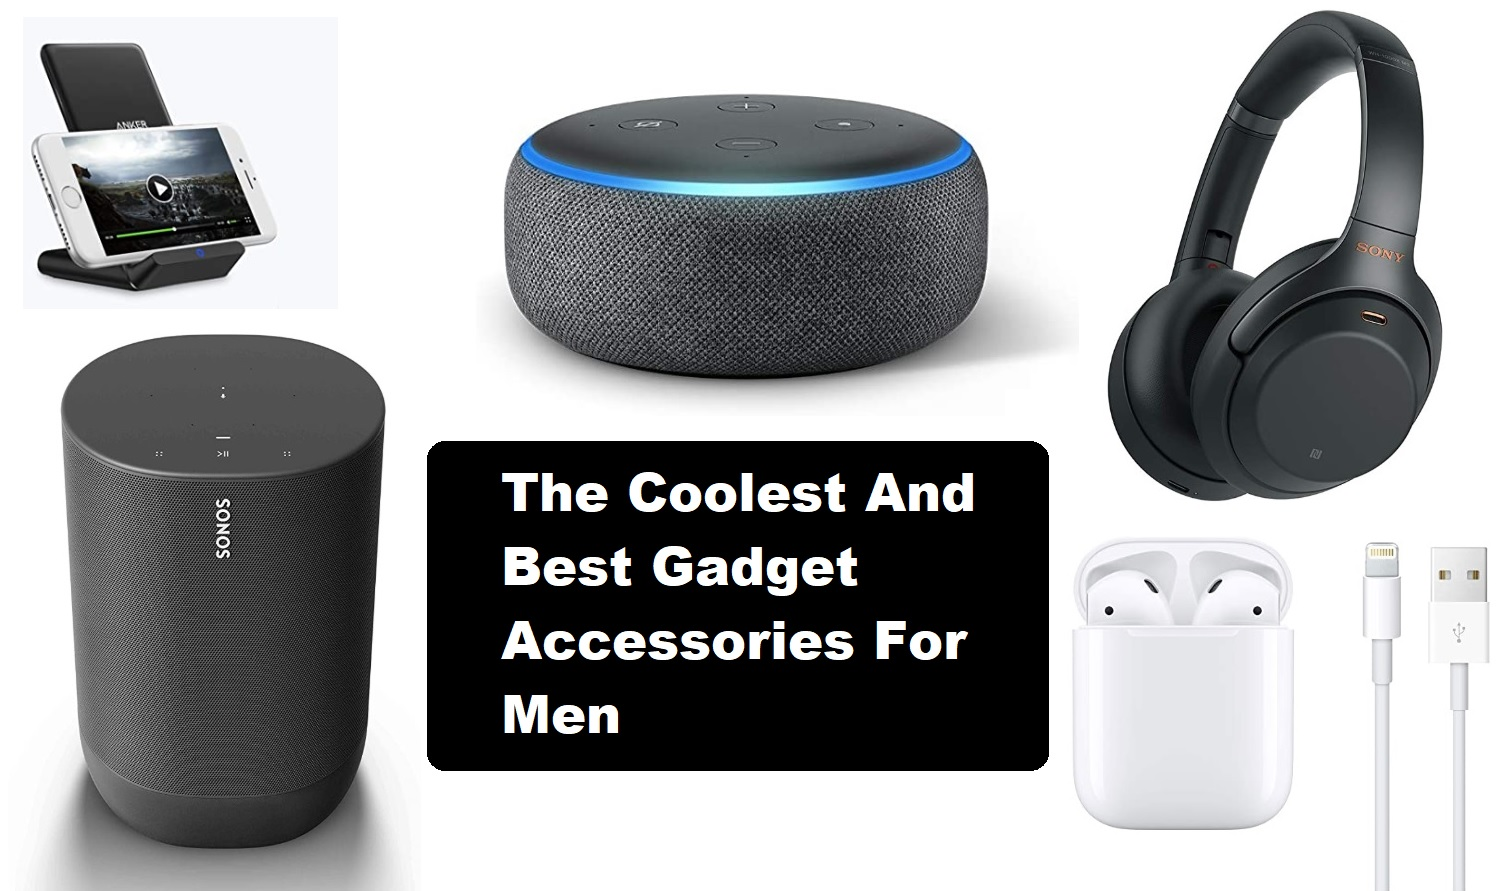 The Coolest And Best Gadget Accessories For Men